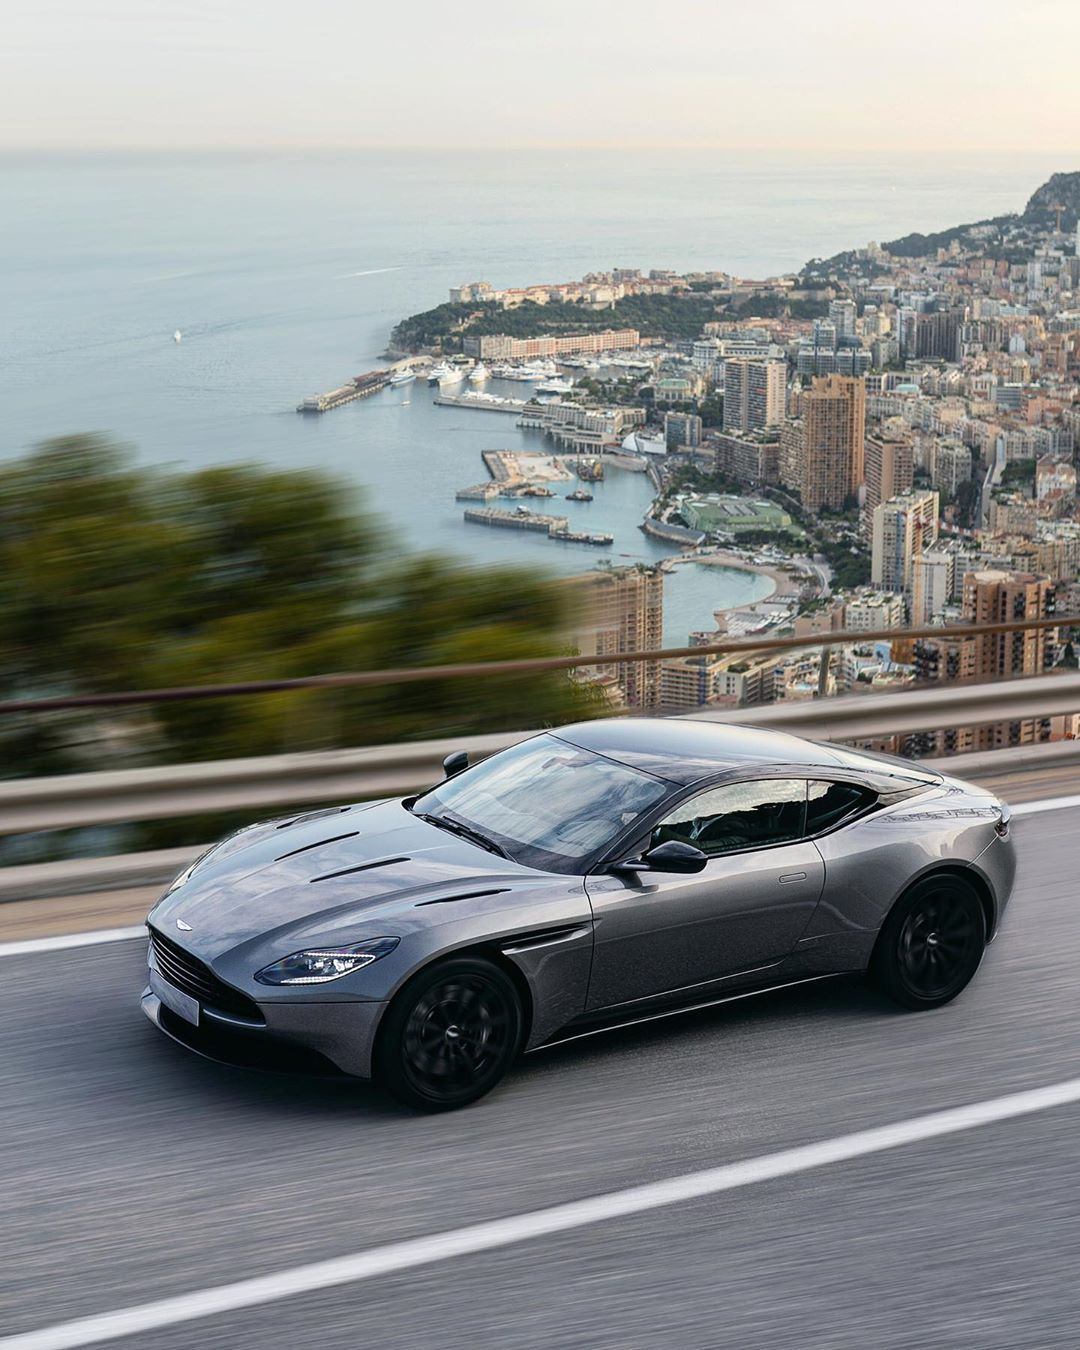 "Tom Claeren • Monte-Carlo on Instagram: ""? Wild yet elegant V12 roaring over Monaco. #DB11AMR, the most powerful DB production model in Aston Martin's history, is fantastic to…"""